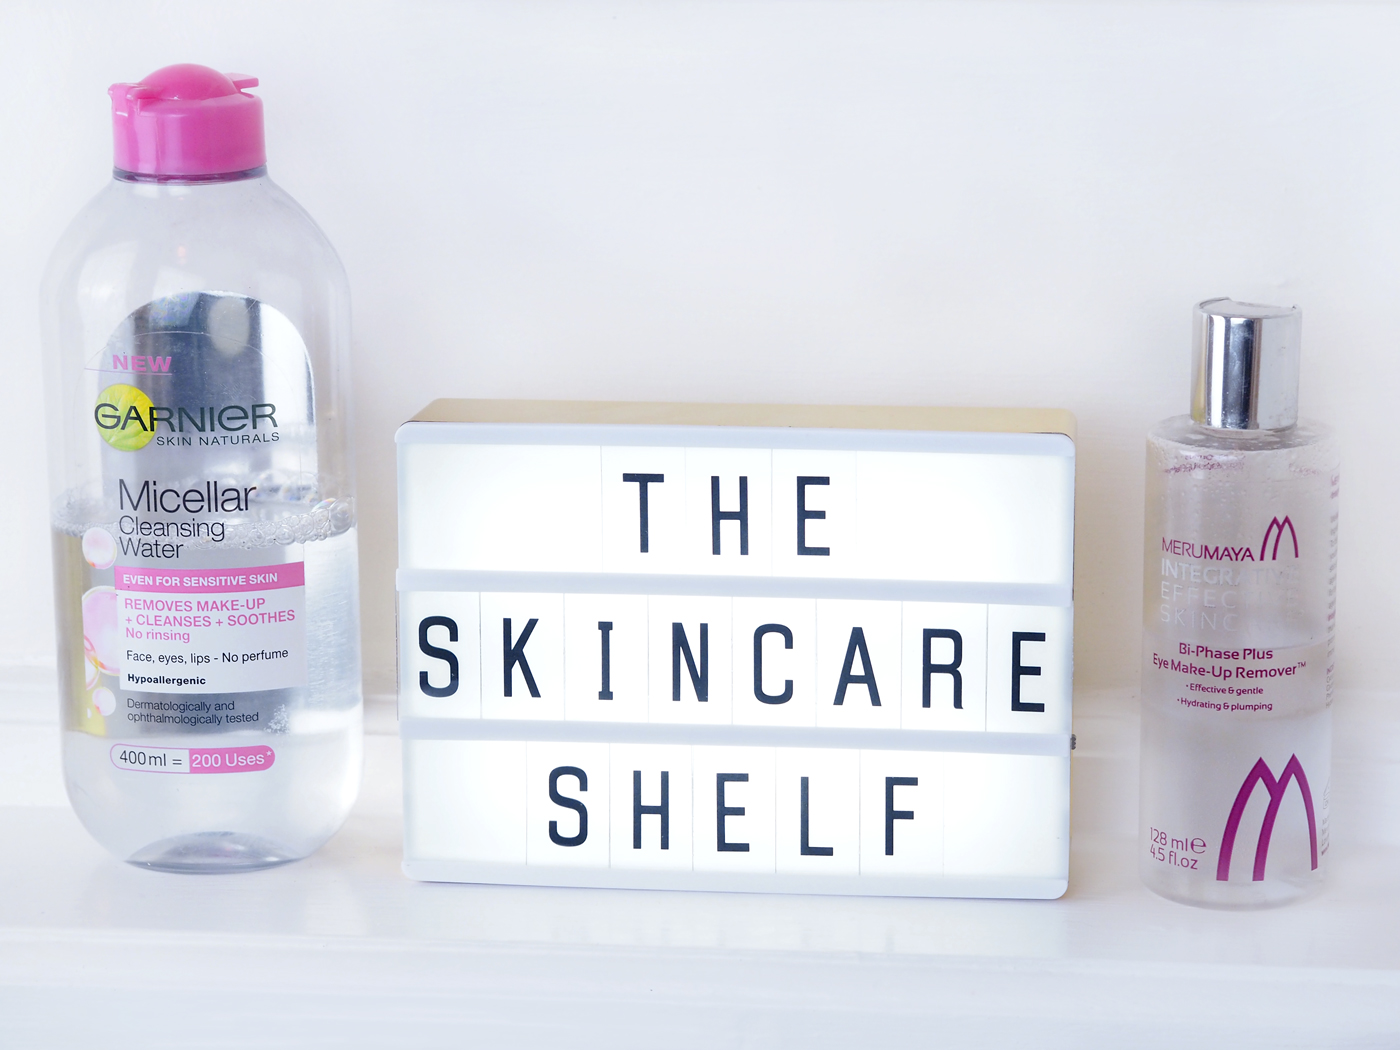 Winter Skincare Shelf cleansers